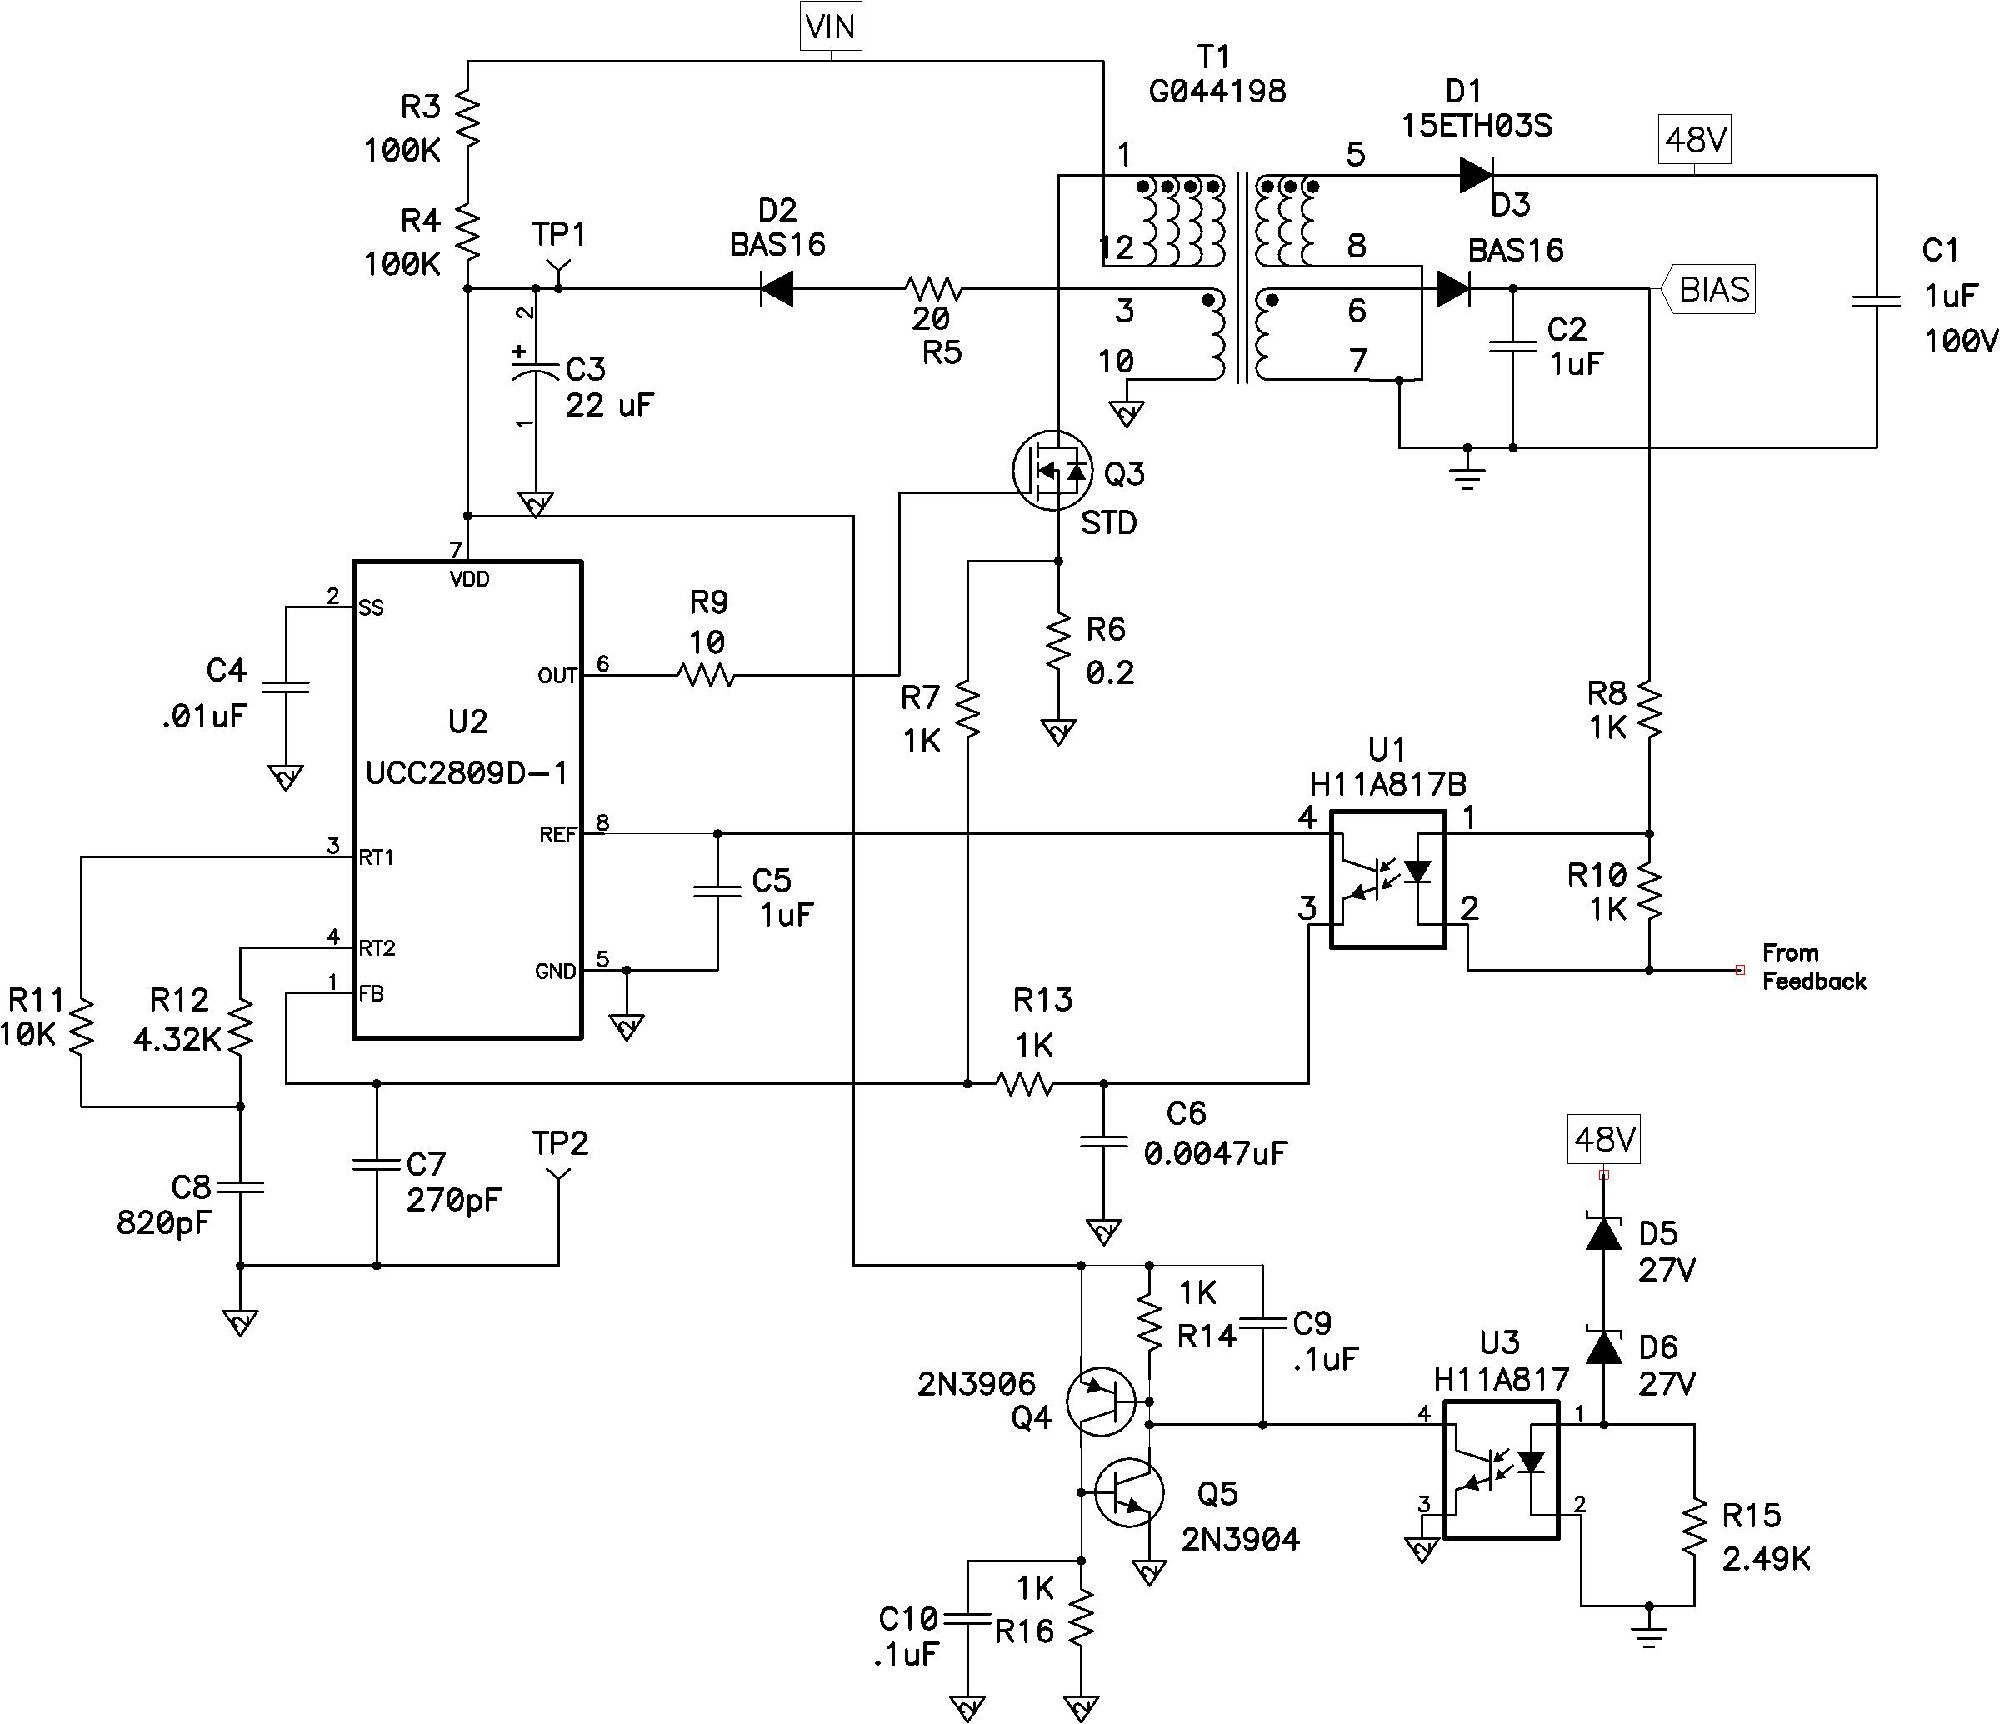 tattoo power supply wiring diagram Download-Tattoo Power Supply Wiring Diagram Tattoo Power Supply Wiring Diagram Image 12-t